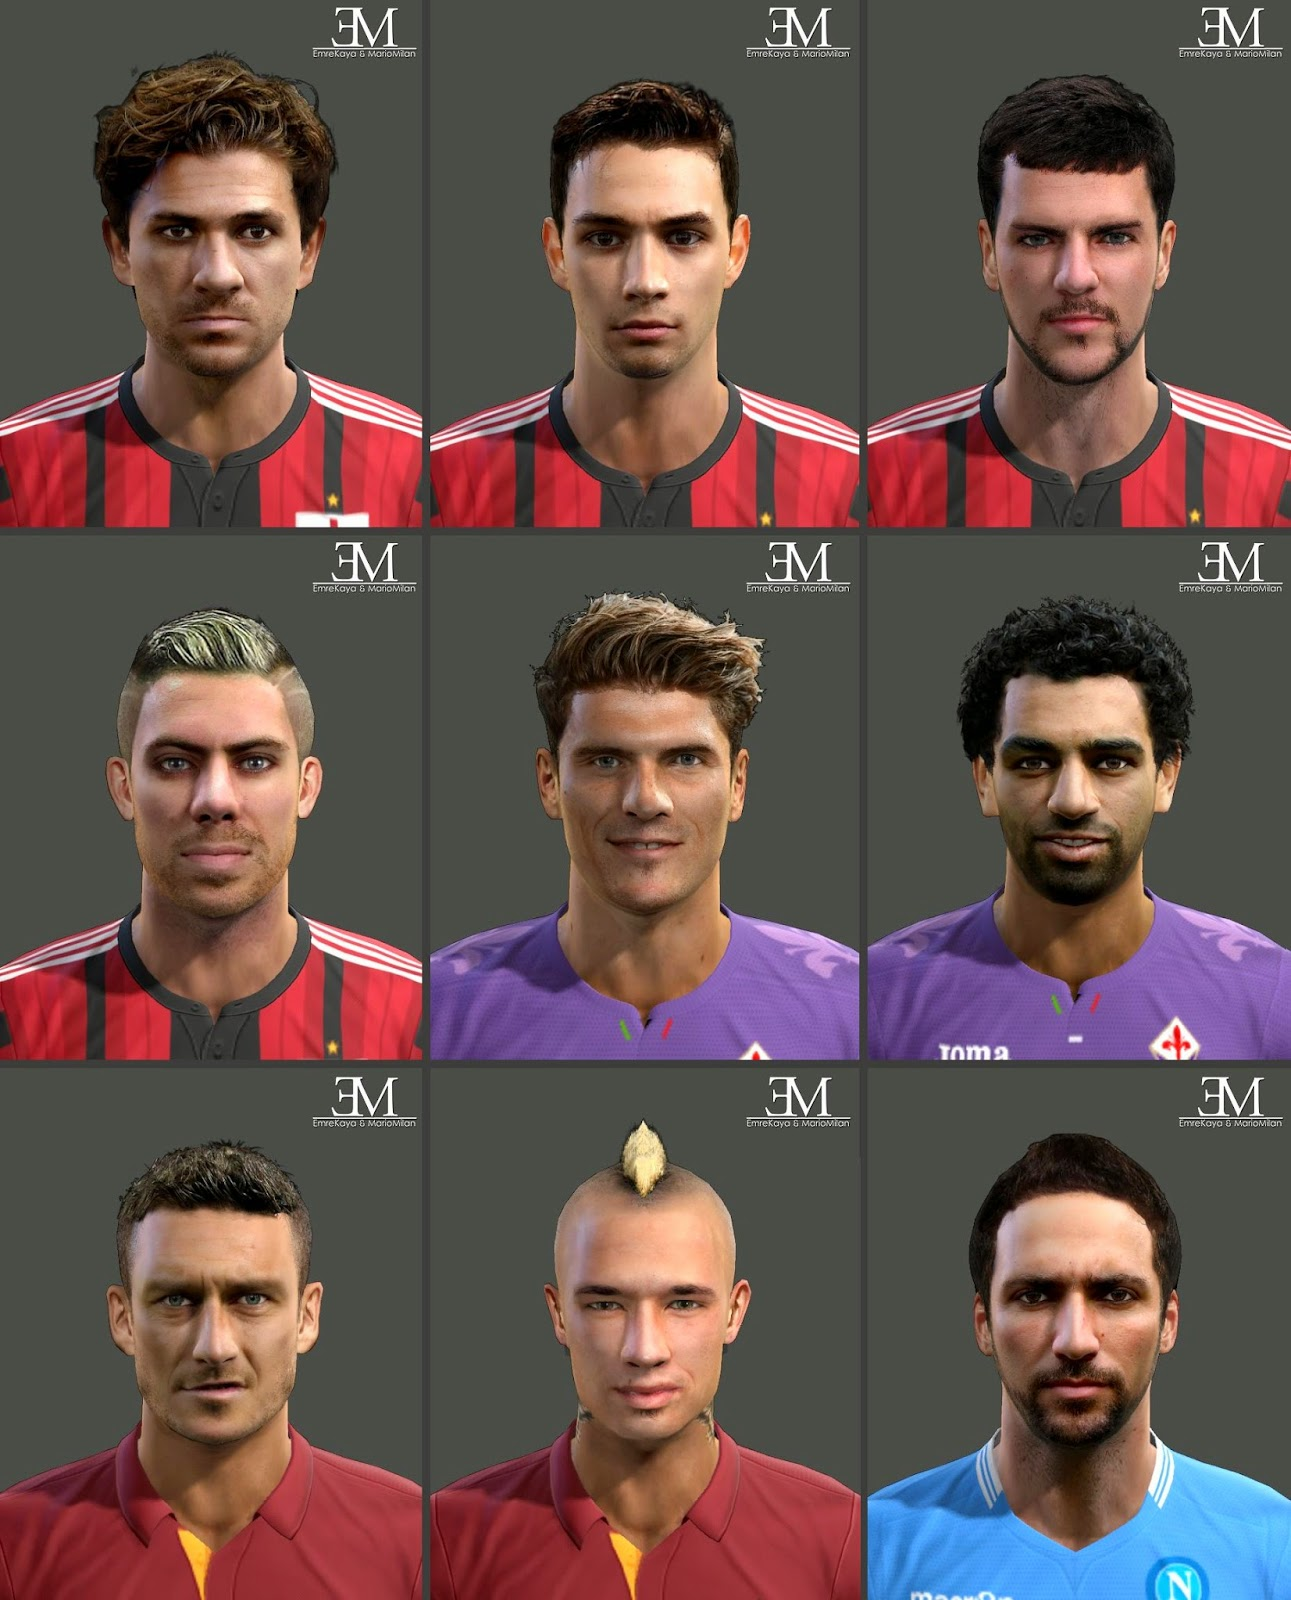 Ultigamerz Pes 2010 Pes 2011 Face: PES-MODIF: April 2015